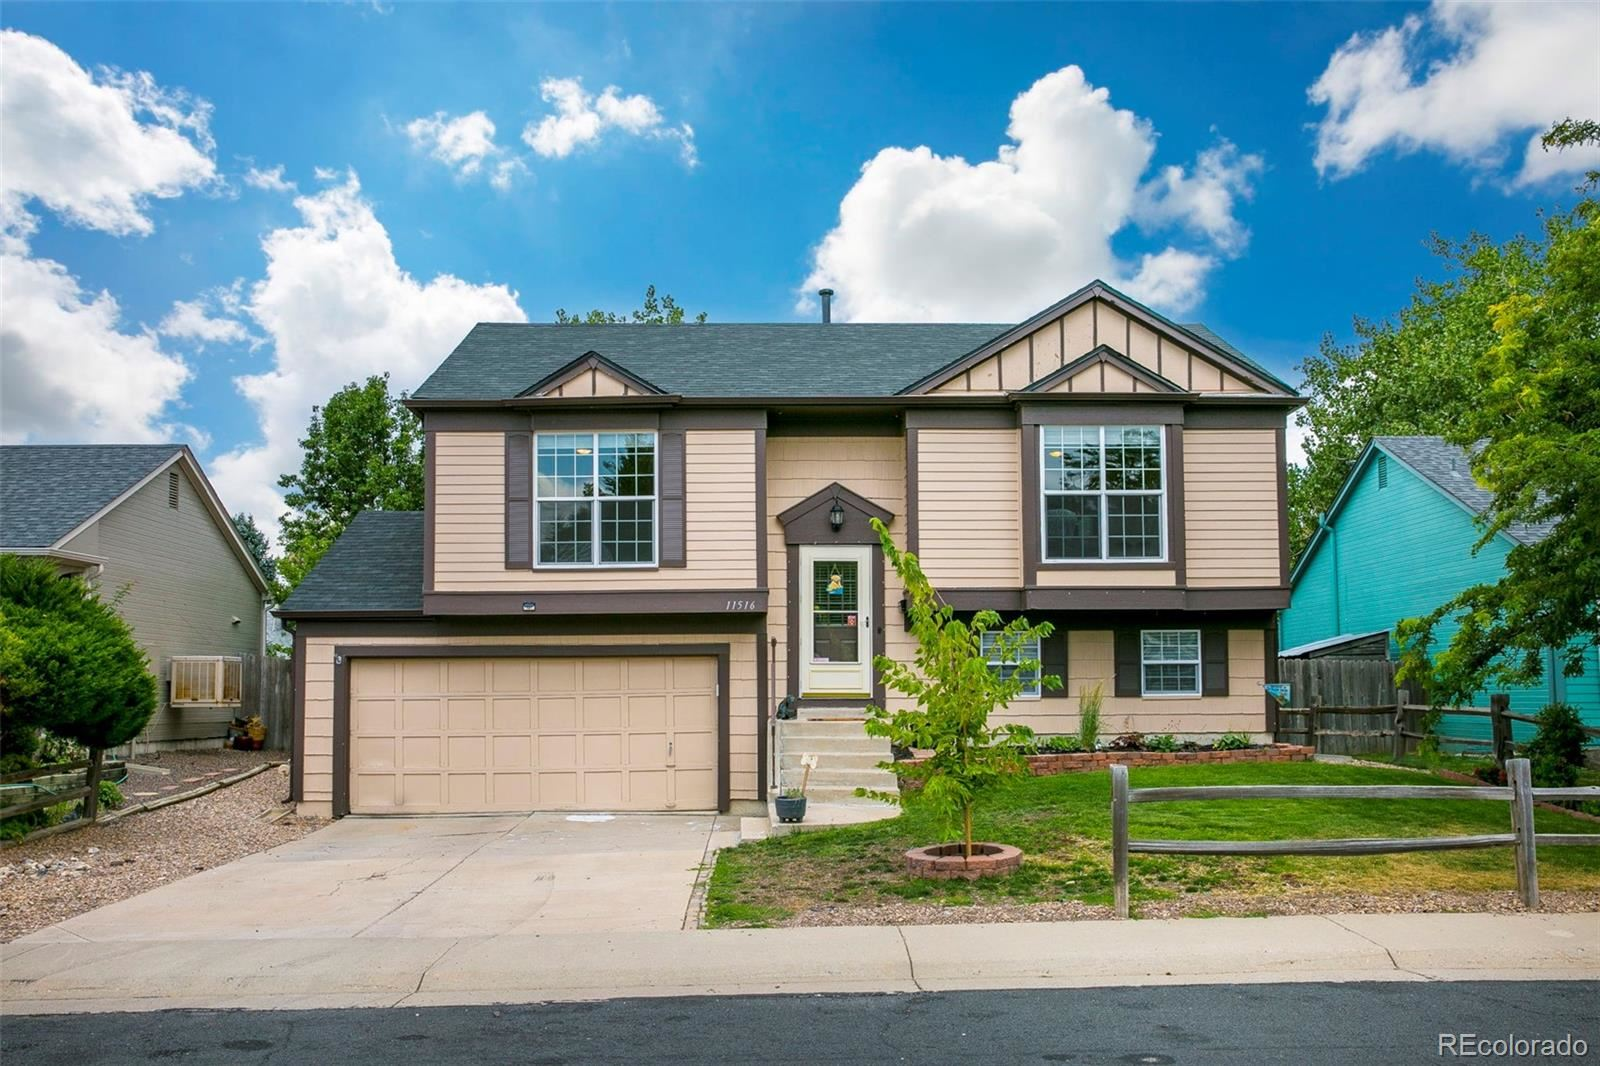 11516 W 102nd Place, Westminster, CO 80021 - #: 5958511